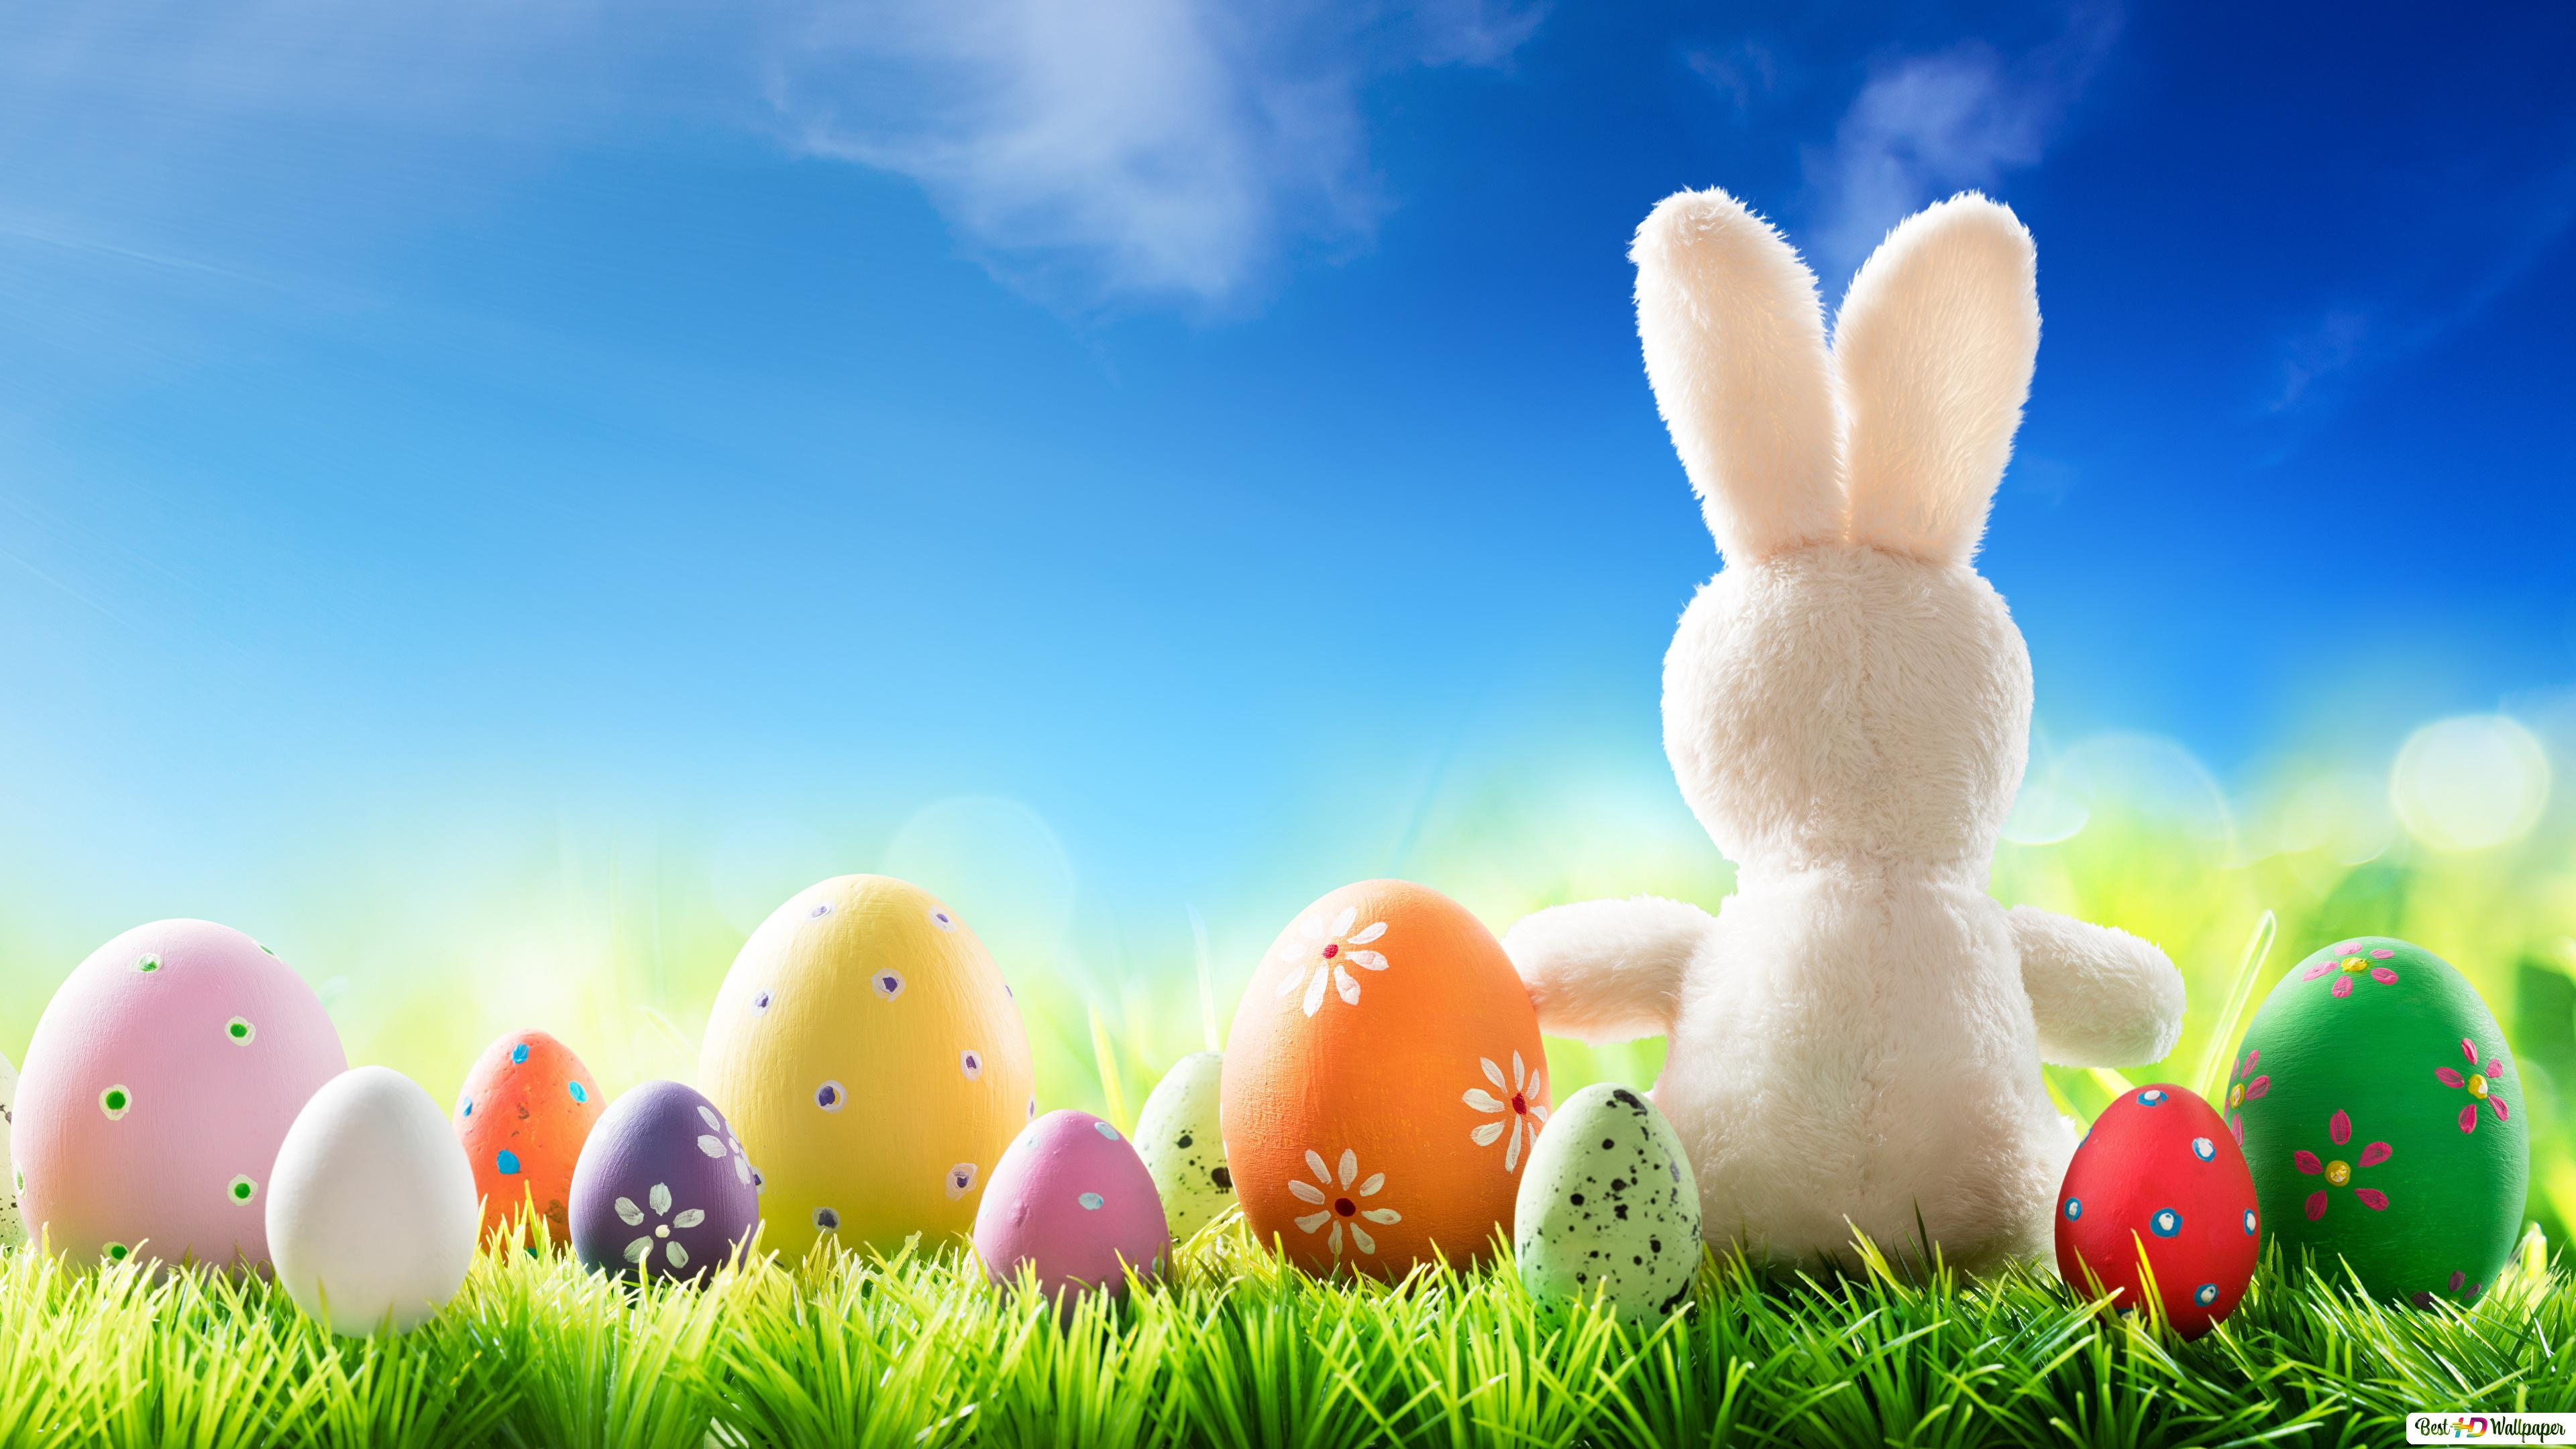 Cute Easter Bunny With Colorful Eggs Hd Wallpaper Download